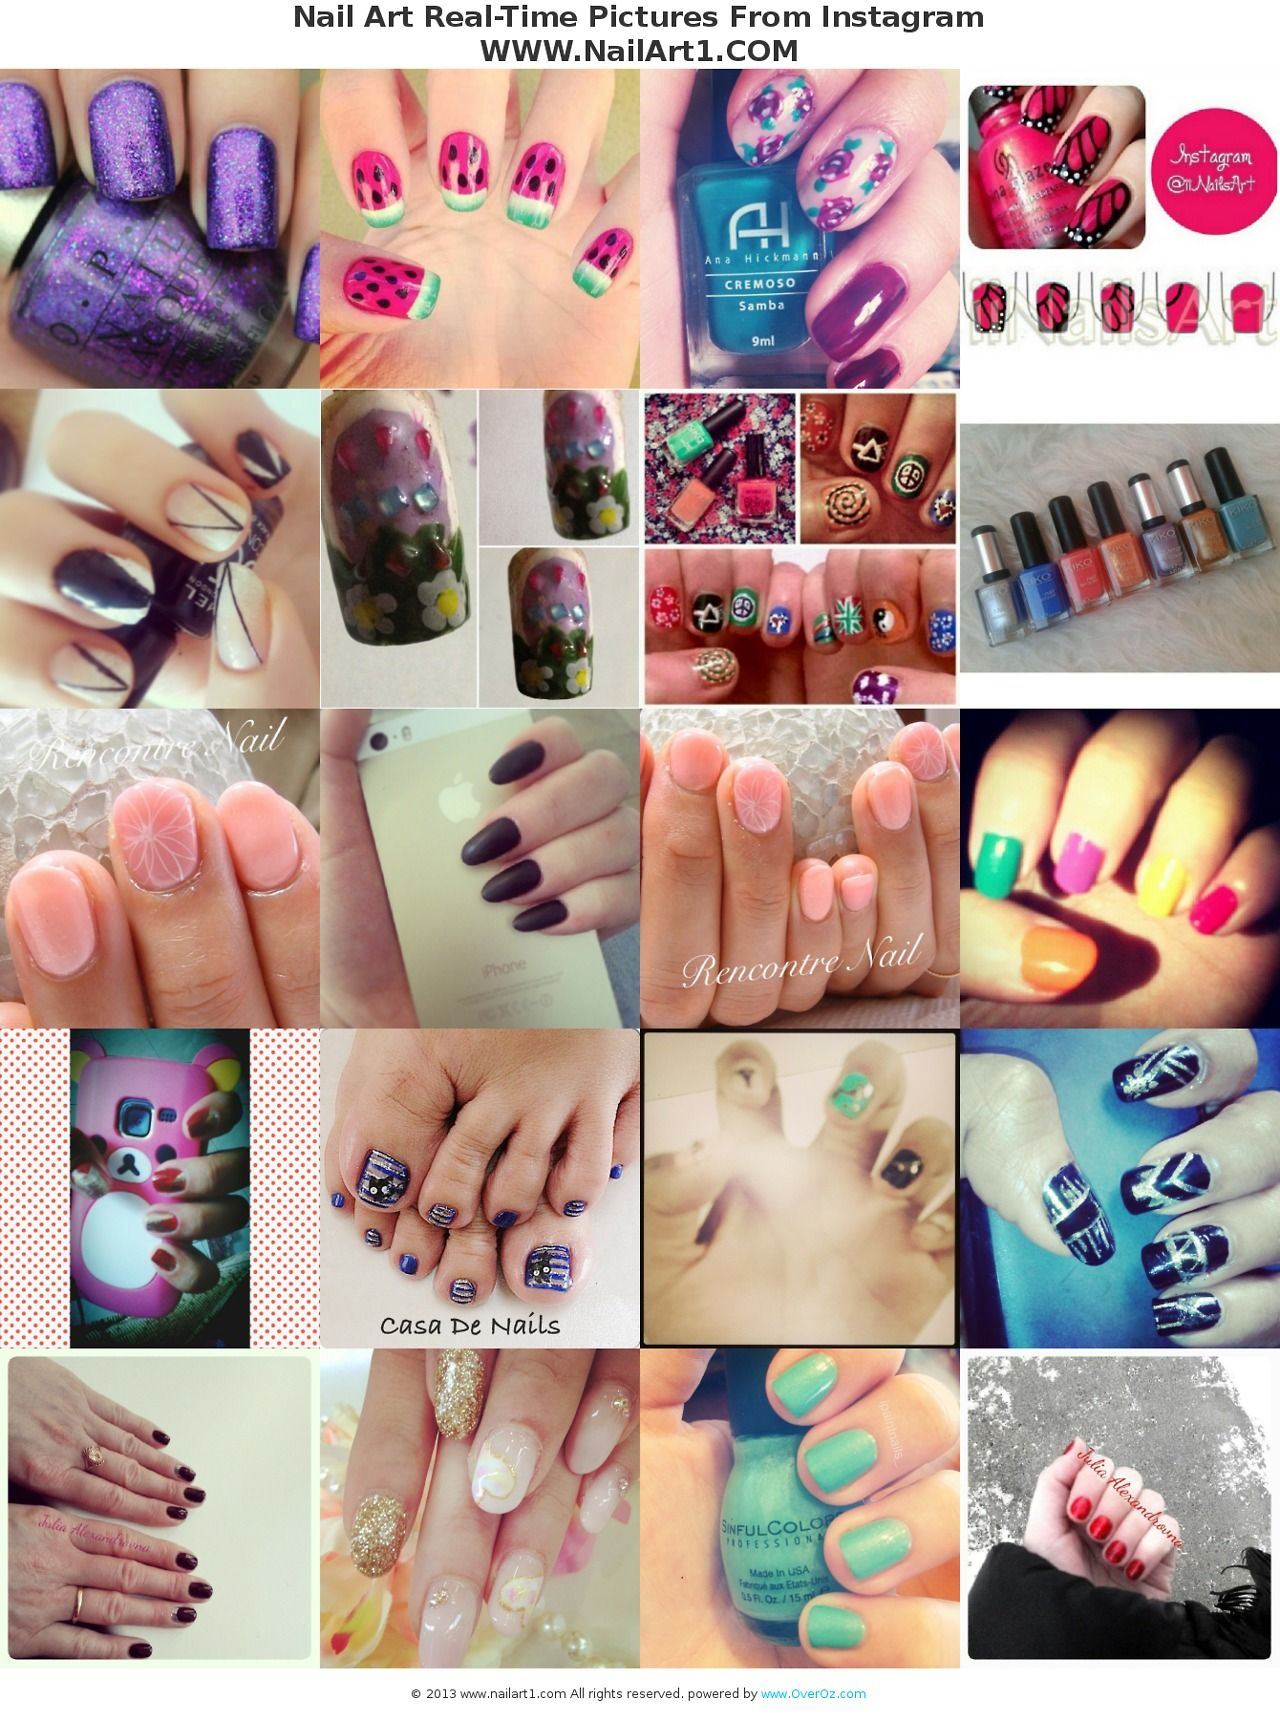 Nail Art - Source: http://www.nailart1.com